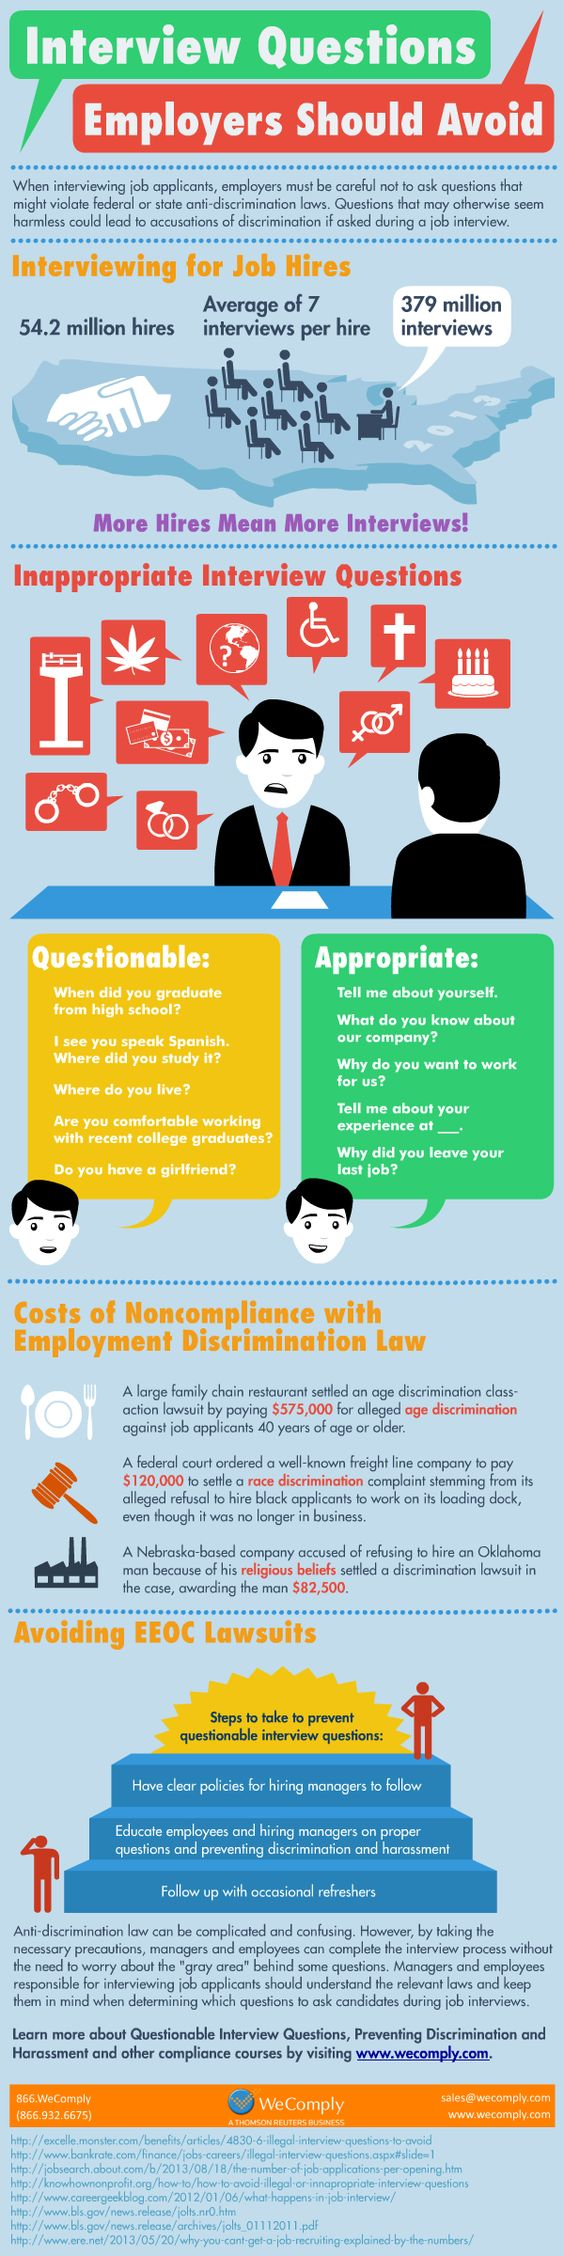 interview questions employers should avoid infographic useful interview questions employers should avoid infographic